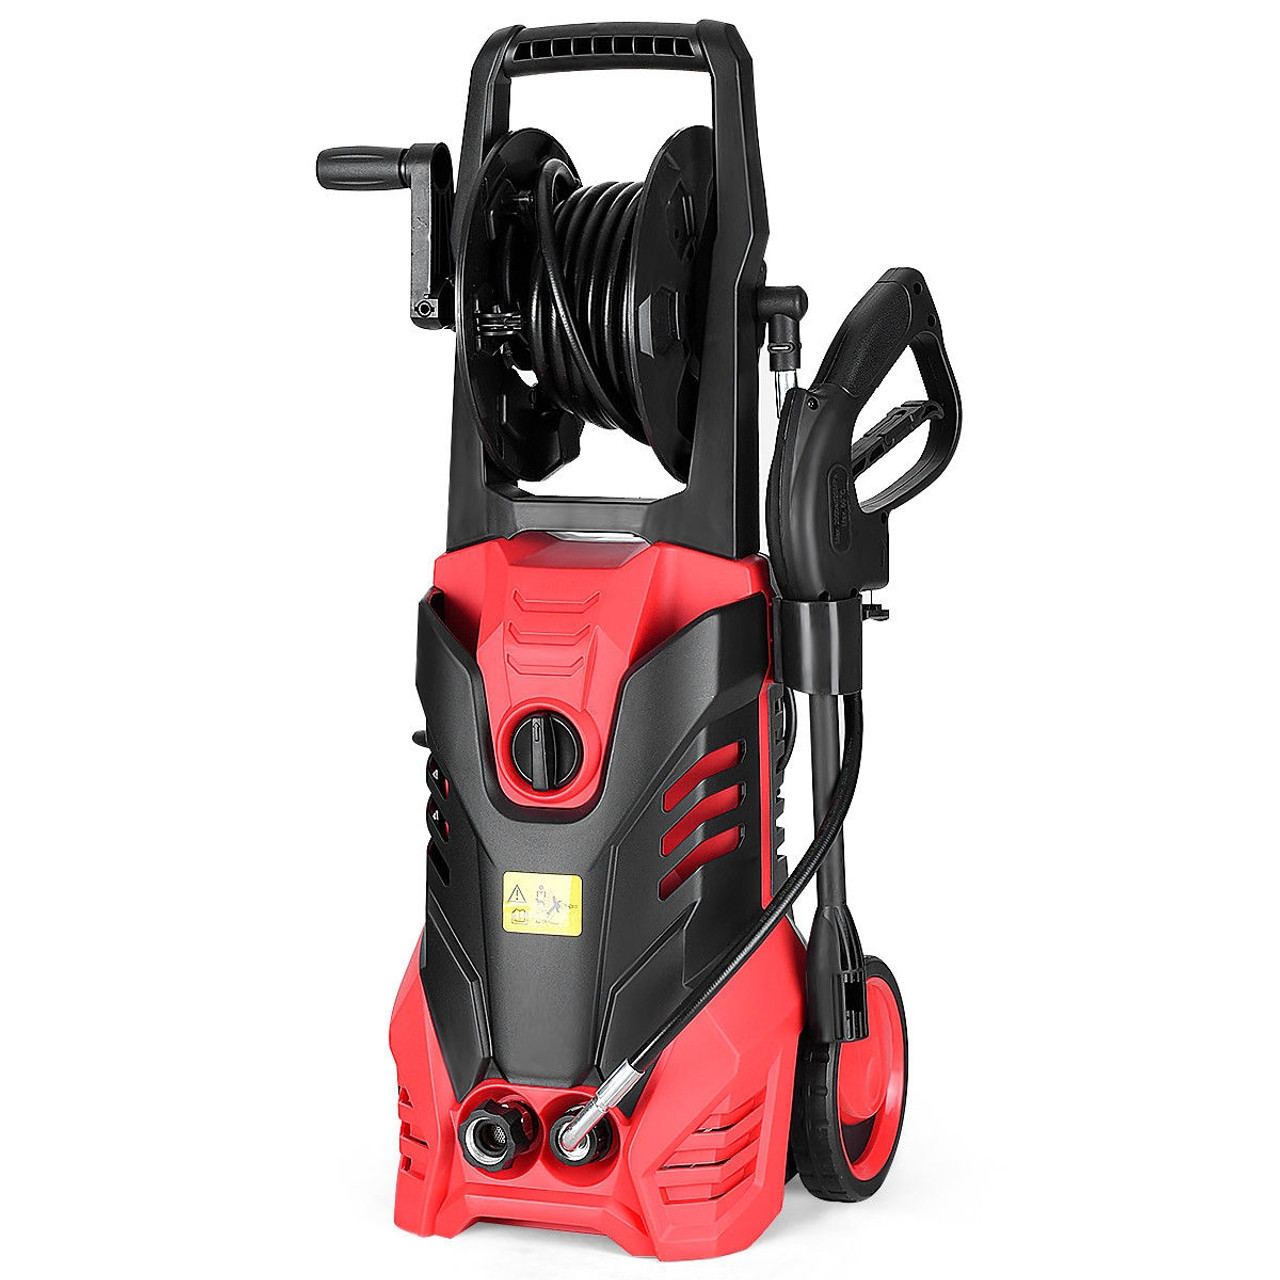 2 gpm 2000 w 3000 psi electric high pressure washer red ep22894re